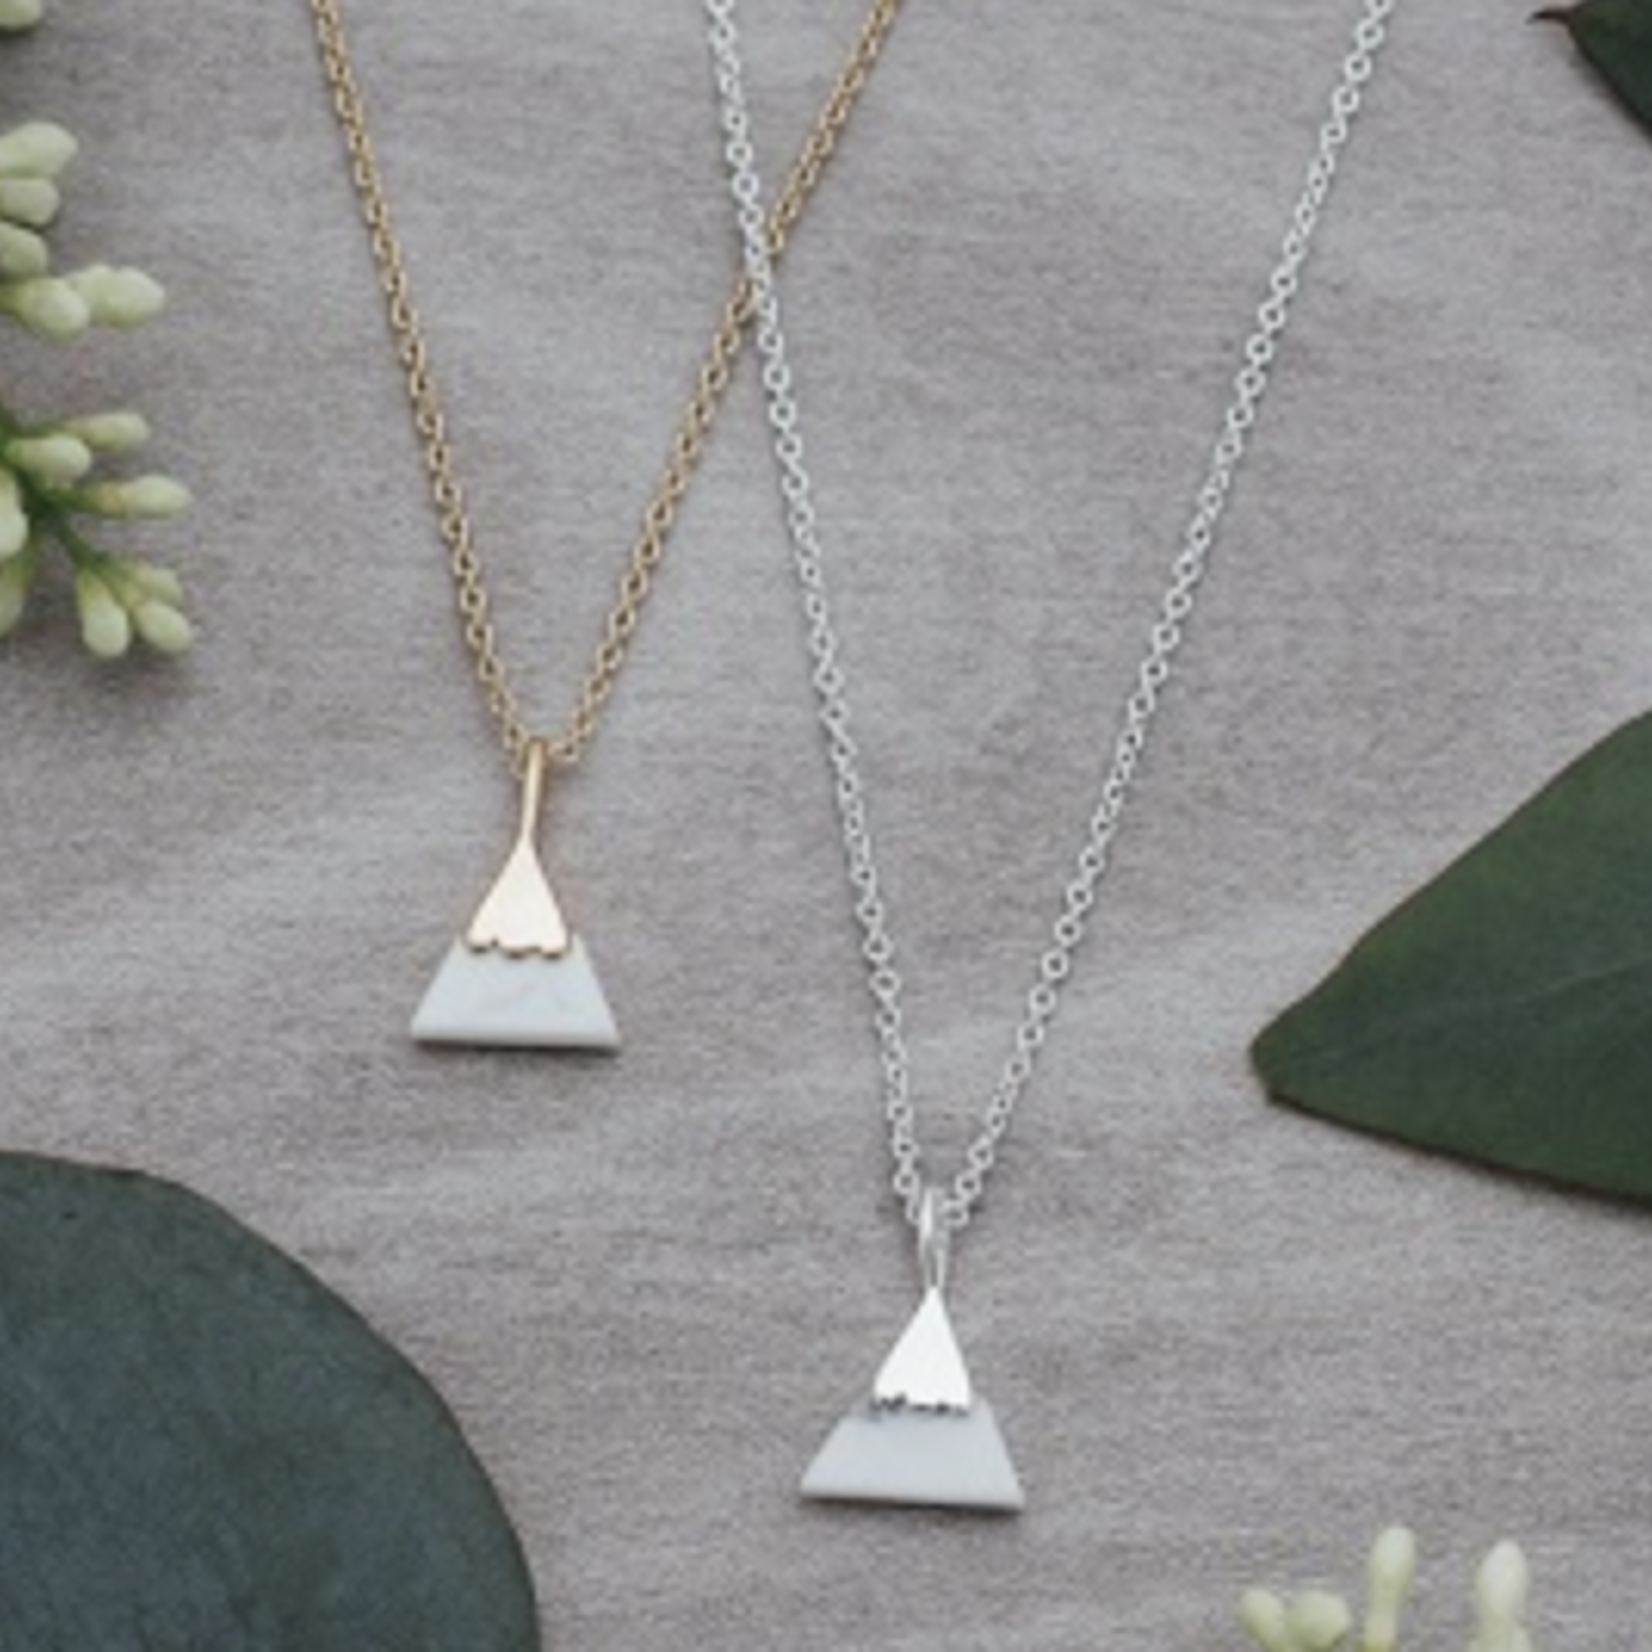 Peak Necklaces